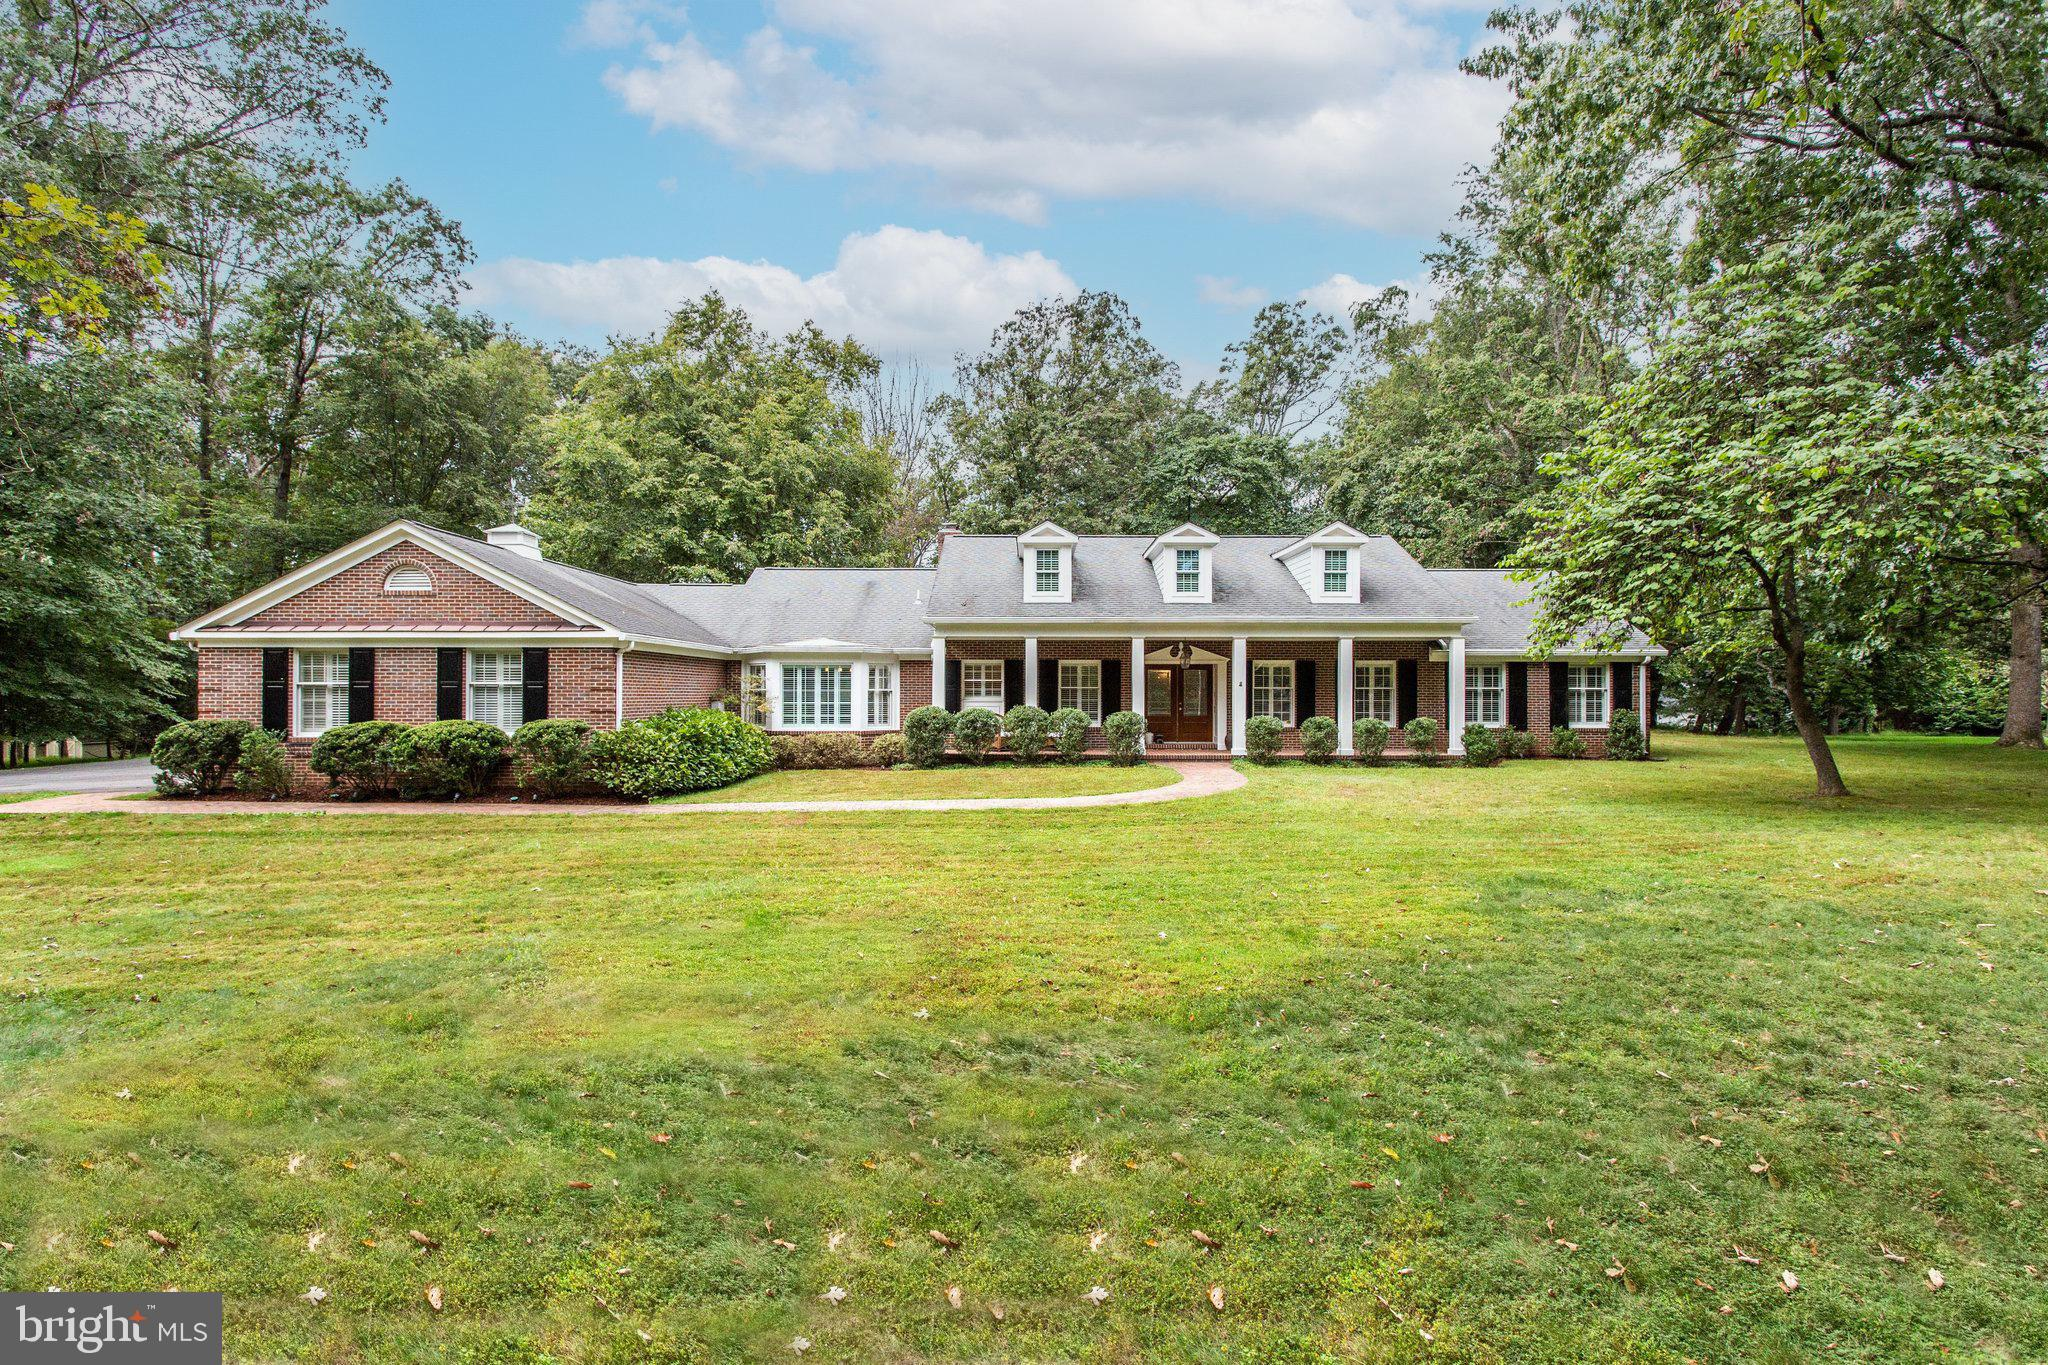 Lovely Cape Cod with two acres of scenic views, mature trees & level backyard.  The front entry prov